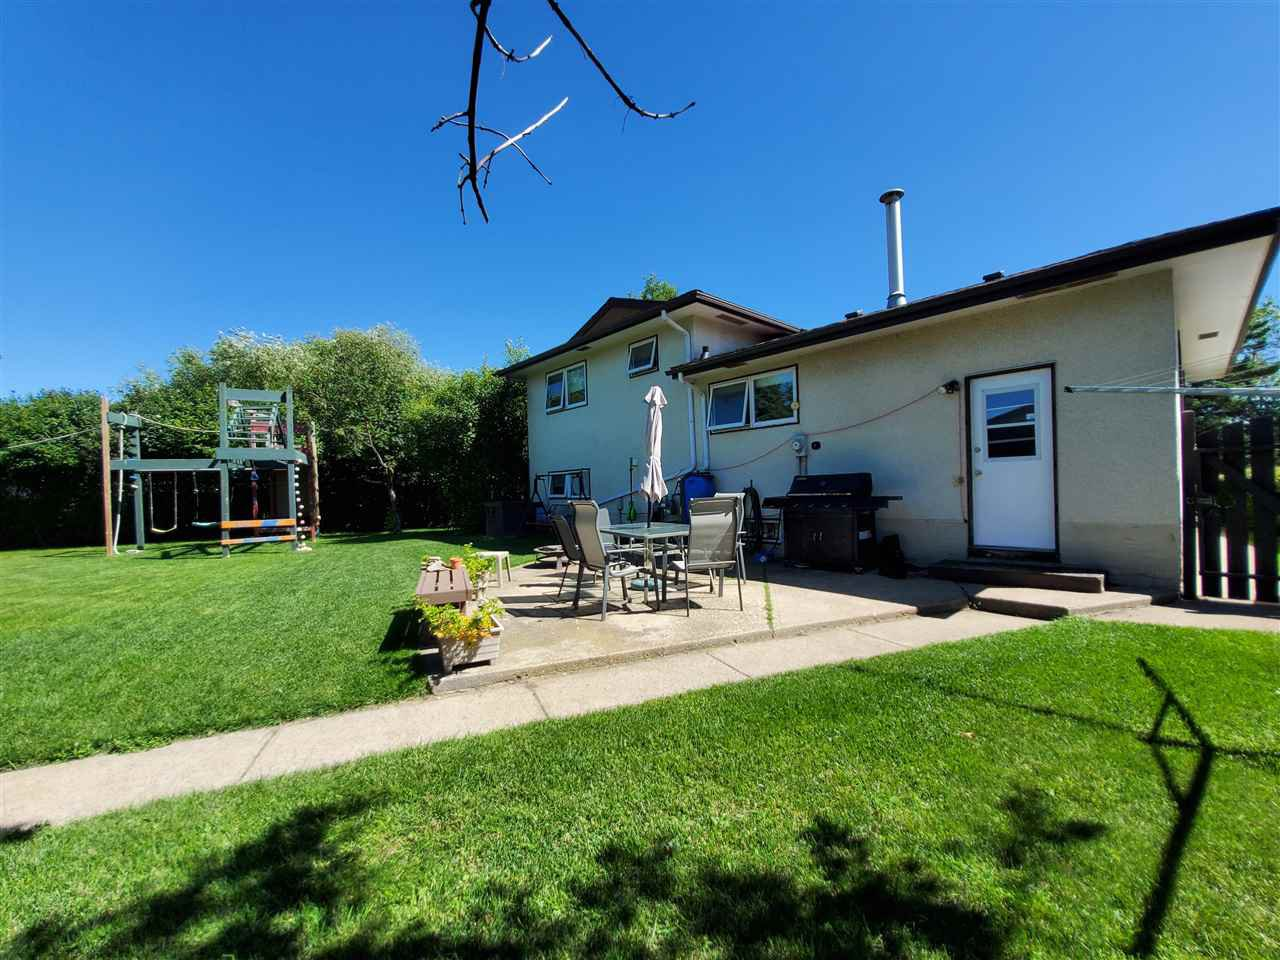 Photo 37: Photos: 125 Spruce Crescent: Wetaskiwin House for sale : MLS®# E4207728